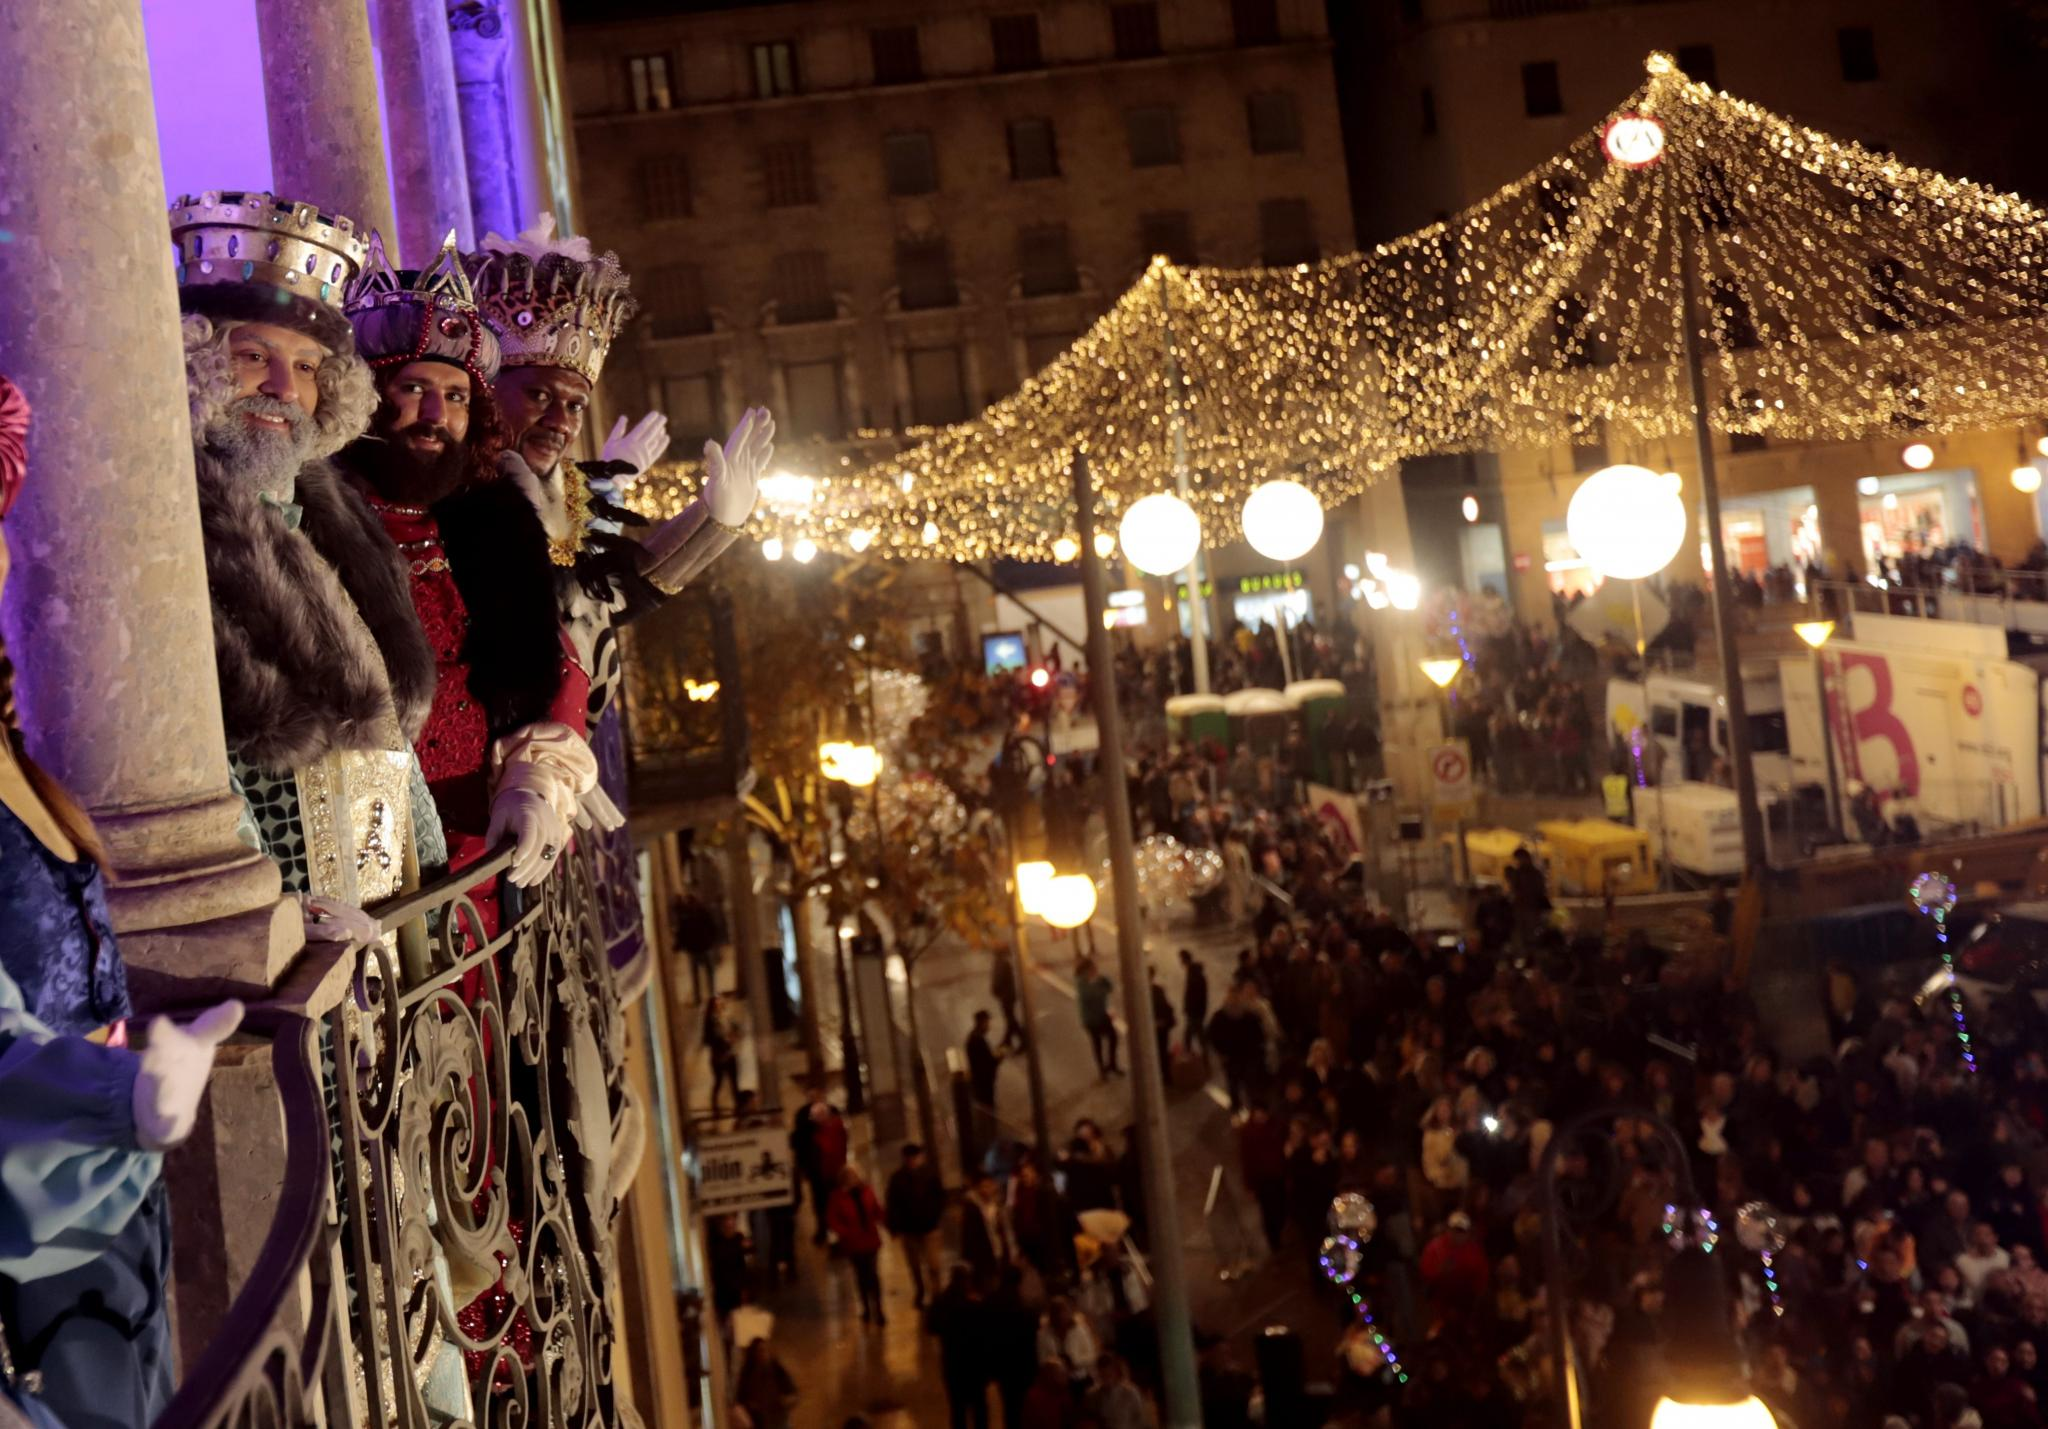 Three Kings Parade in Palma